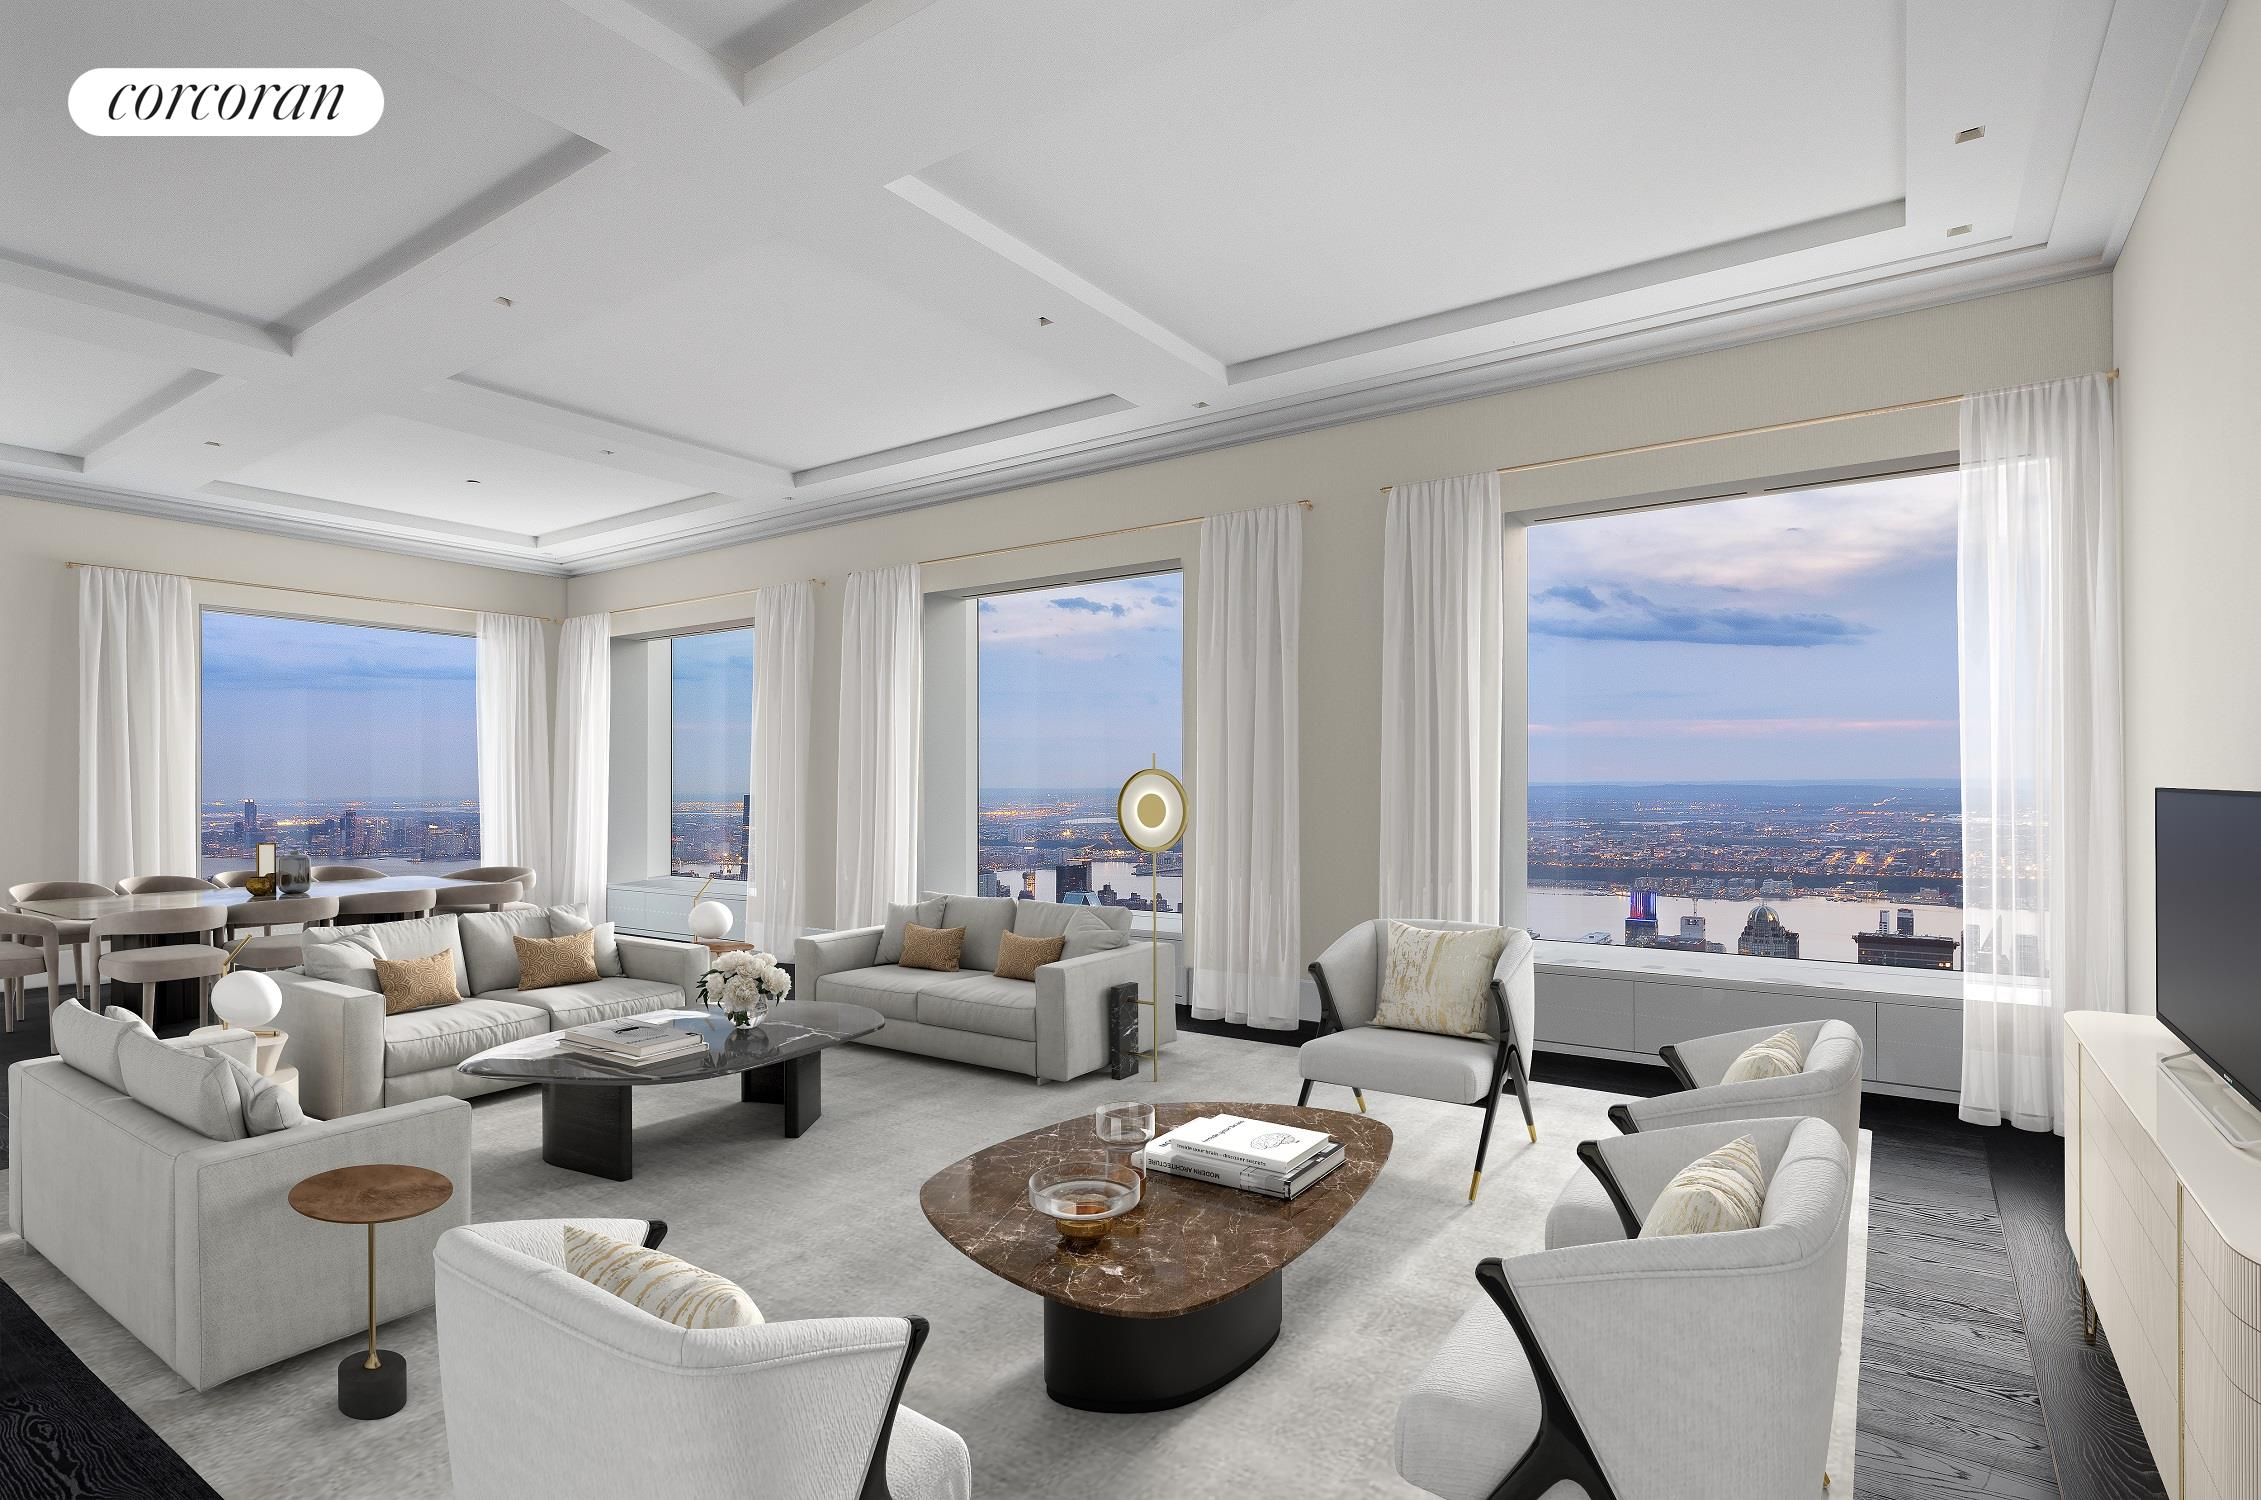 """Penthouse 82 at 432 Park AvenueImpeccably Designed and Brand New Full Floor PenthouseVirtually Staged Photography Five Bedrooms / Six Baths / Two Powder Rooms / 8,054 sqftPenthouse 82 at 432 Park Avenue is an extraordinary full-floor residence offering a perfect balance of space, privacy, dramatic views, and design.Soaring at an impressive elevation of over 1,100 feet above Park Avenue in the middle of Manhattan, this residence features iconic and awe-inspiring 360-degree views from the Hudson River to the Atlantic Ocean, Central Park, and skyline.Meticulously designed this brand new full-floor penthouse is the result of a multimillion-dollar renovation by NJ Caine Architects in which two residences were combined to seamlessly create a breathtaking display of scale and proportion measuring over 8,000 sqft with beautiful views perfectly framed by 432 Park Avenue's iconic 10' x 10' windows and ceilings measuring up to 12'-9"""" throughout.Welcomed by a private elevator landing leading to an intimate foyer and spectacular great room with over 1,000 sqft of entertaining space with southern and western exposures boasting stunning direct views of the skyline.The southern wing of this full-floor penthouse features a beautiful great room for entertaining with an expansive chef's kitchen with a separate pantry, custom millwork, an appliance package by Gaggenau and Miele, exquisite stone surfaces throughout, and window framed breakfast bar with direct access to a discreet hall leading to service entrances, perfect for catering and entertaining. Adjacent to the kitchen is a staff office and laundry room.The southeastern corner of this penthouse features a full guest suite with a stunning freestanding deep soaking tub, marble surfaces, custom millwork, and radiant-heated floors.The eastern wing features a total of three bedrooms each with an en-suite bath and separate space for a fitness studio or library. An impressive lounge/media room occupies the entire northeastern corner wit"""